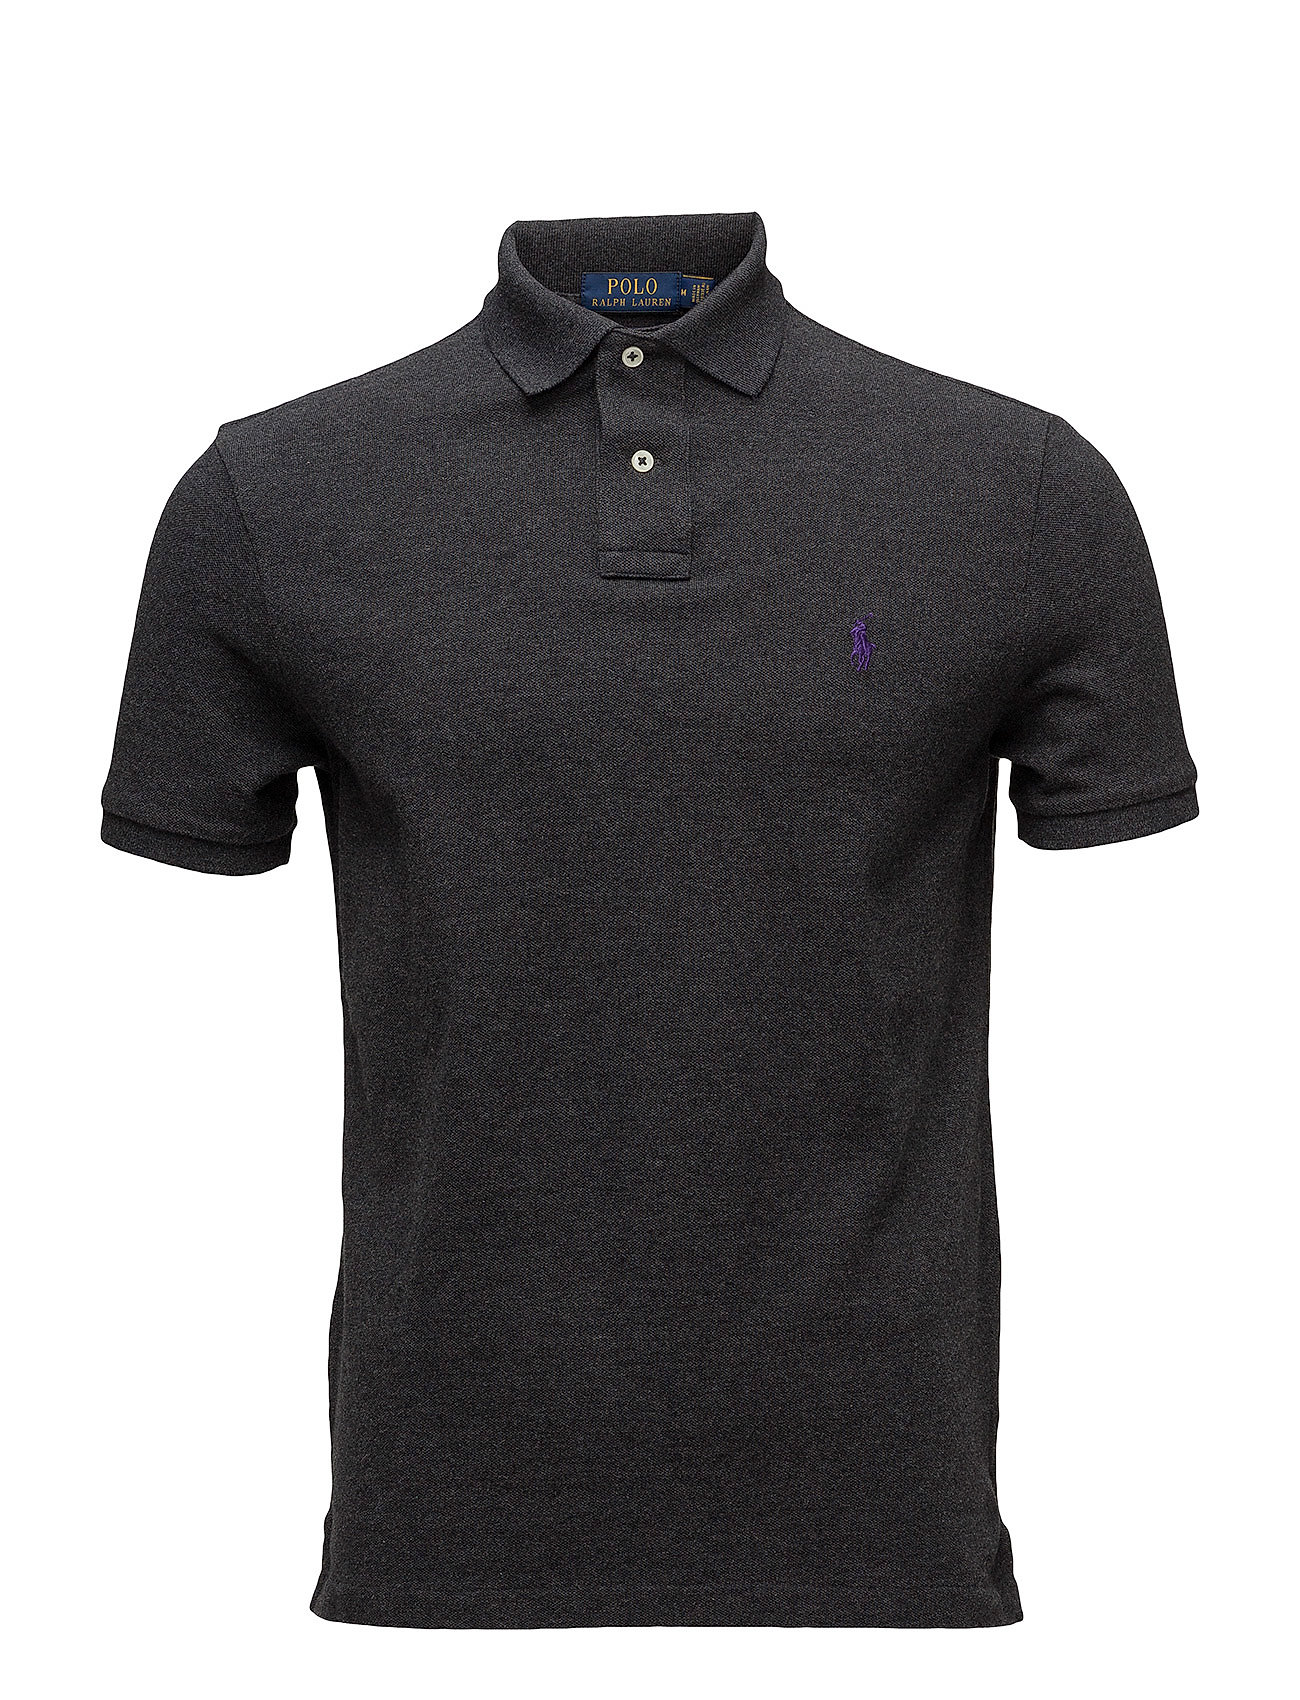 Polo Ralph Lauren SSKCCMSLM1-SHORT SLEEVE-KNIT - DARK GREY HEATHER